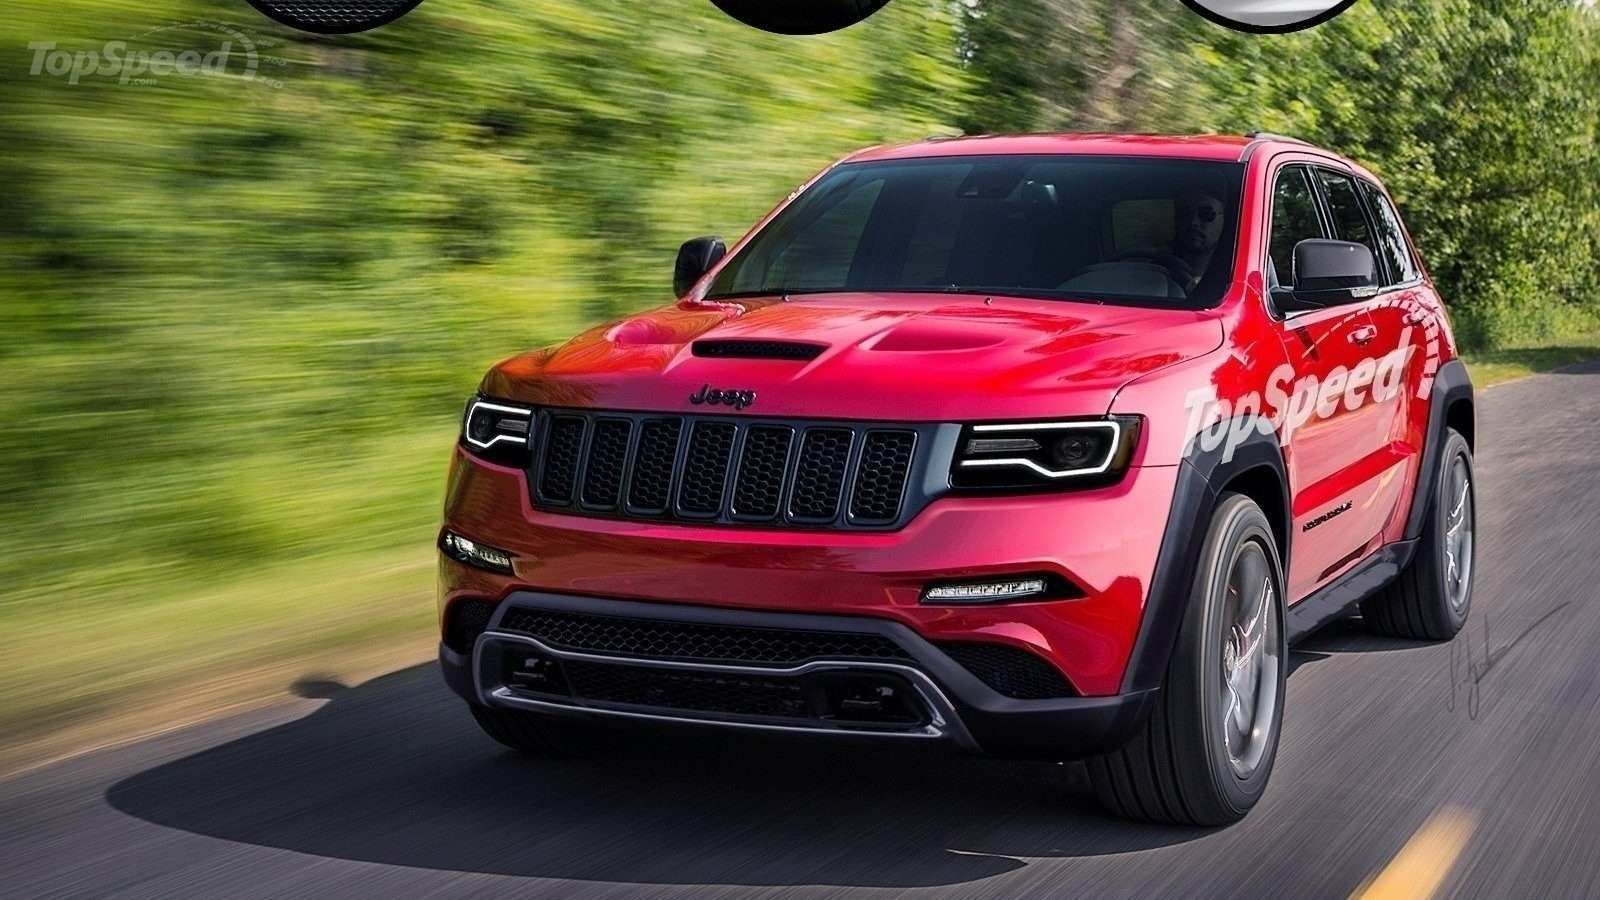 93 The Best 2019 Grand Cherokee Srt Hellcat Images